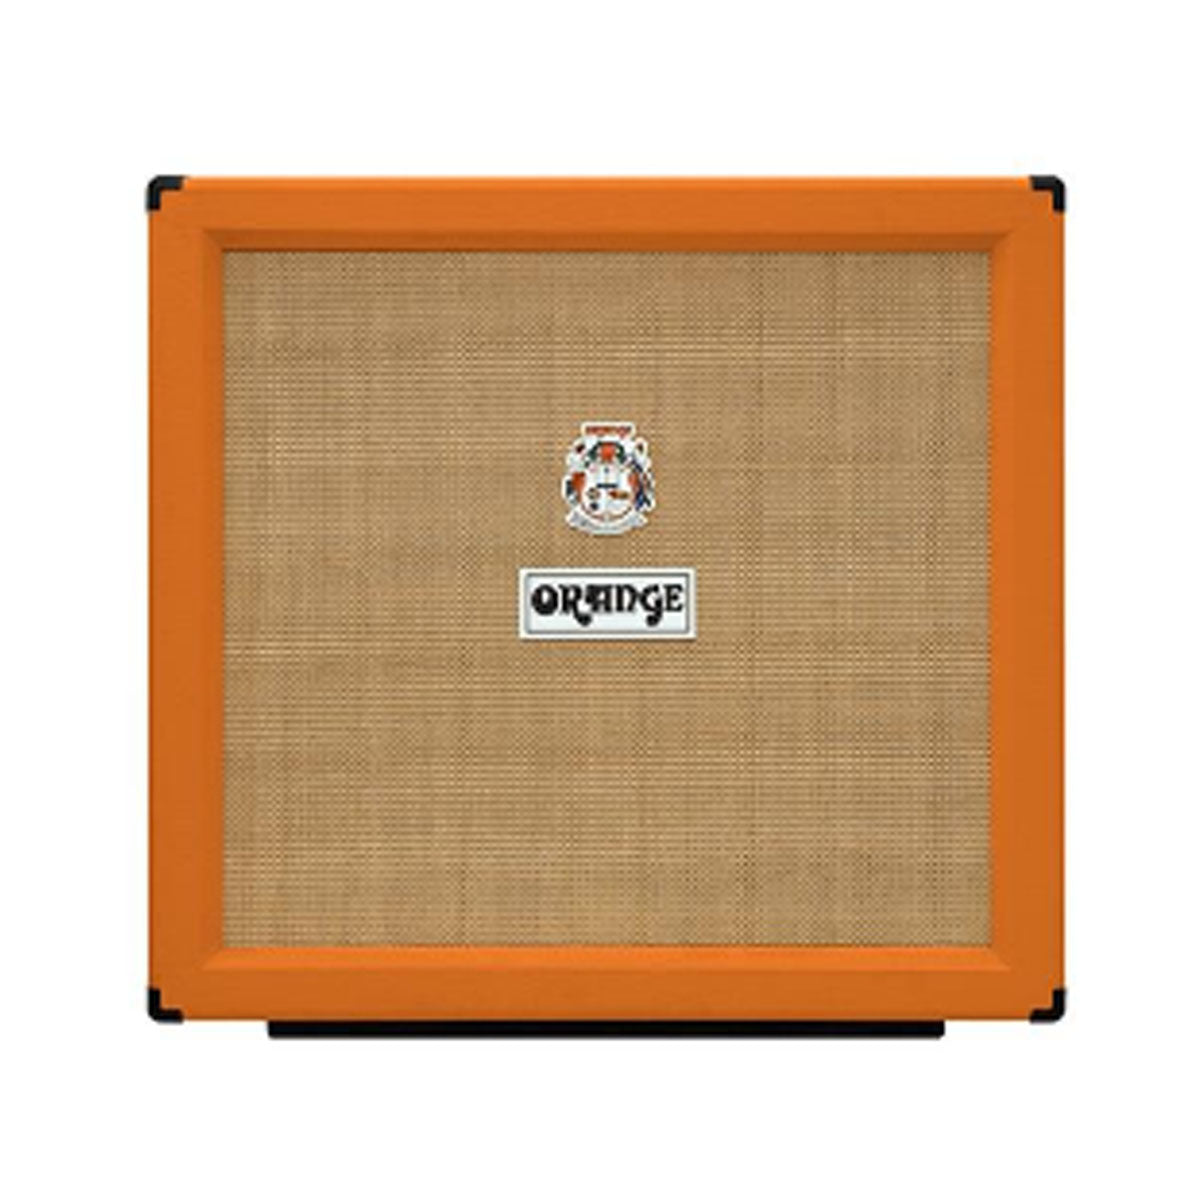 Orange PPC412 Guitar Cabinet Straight 4x12inch Speaker Cab